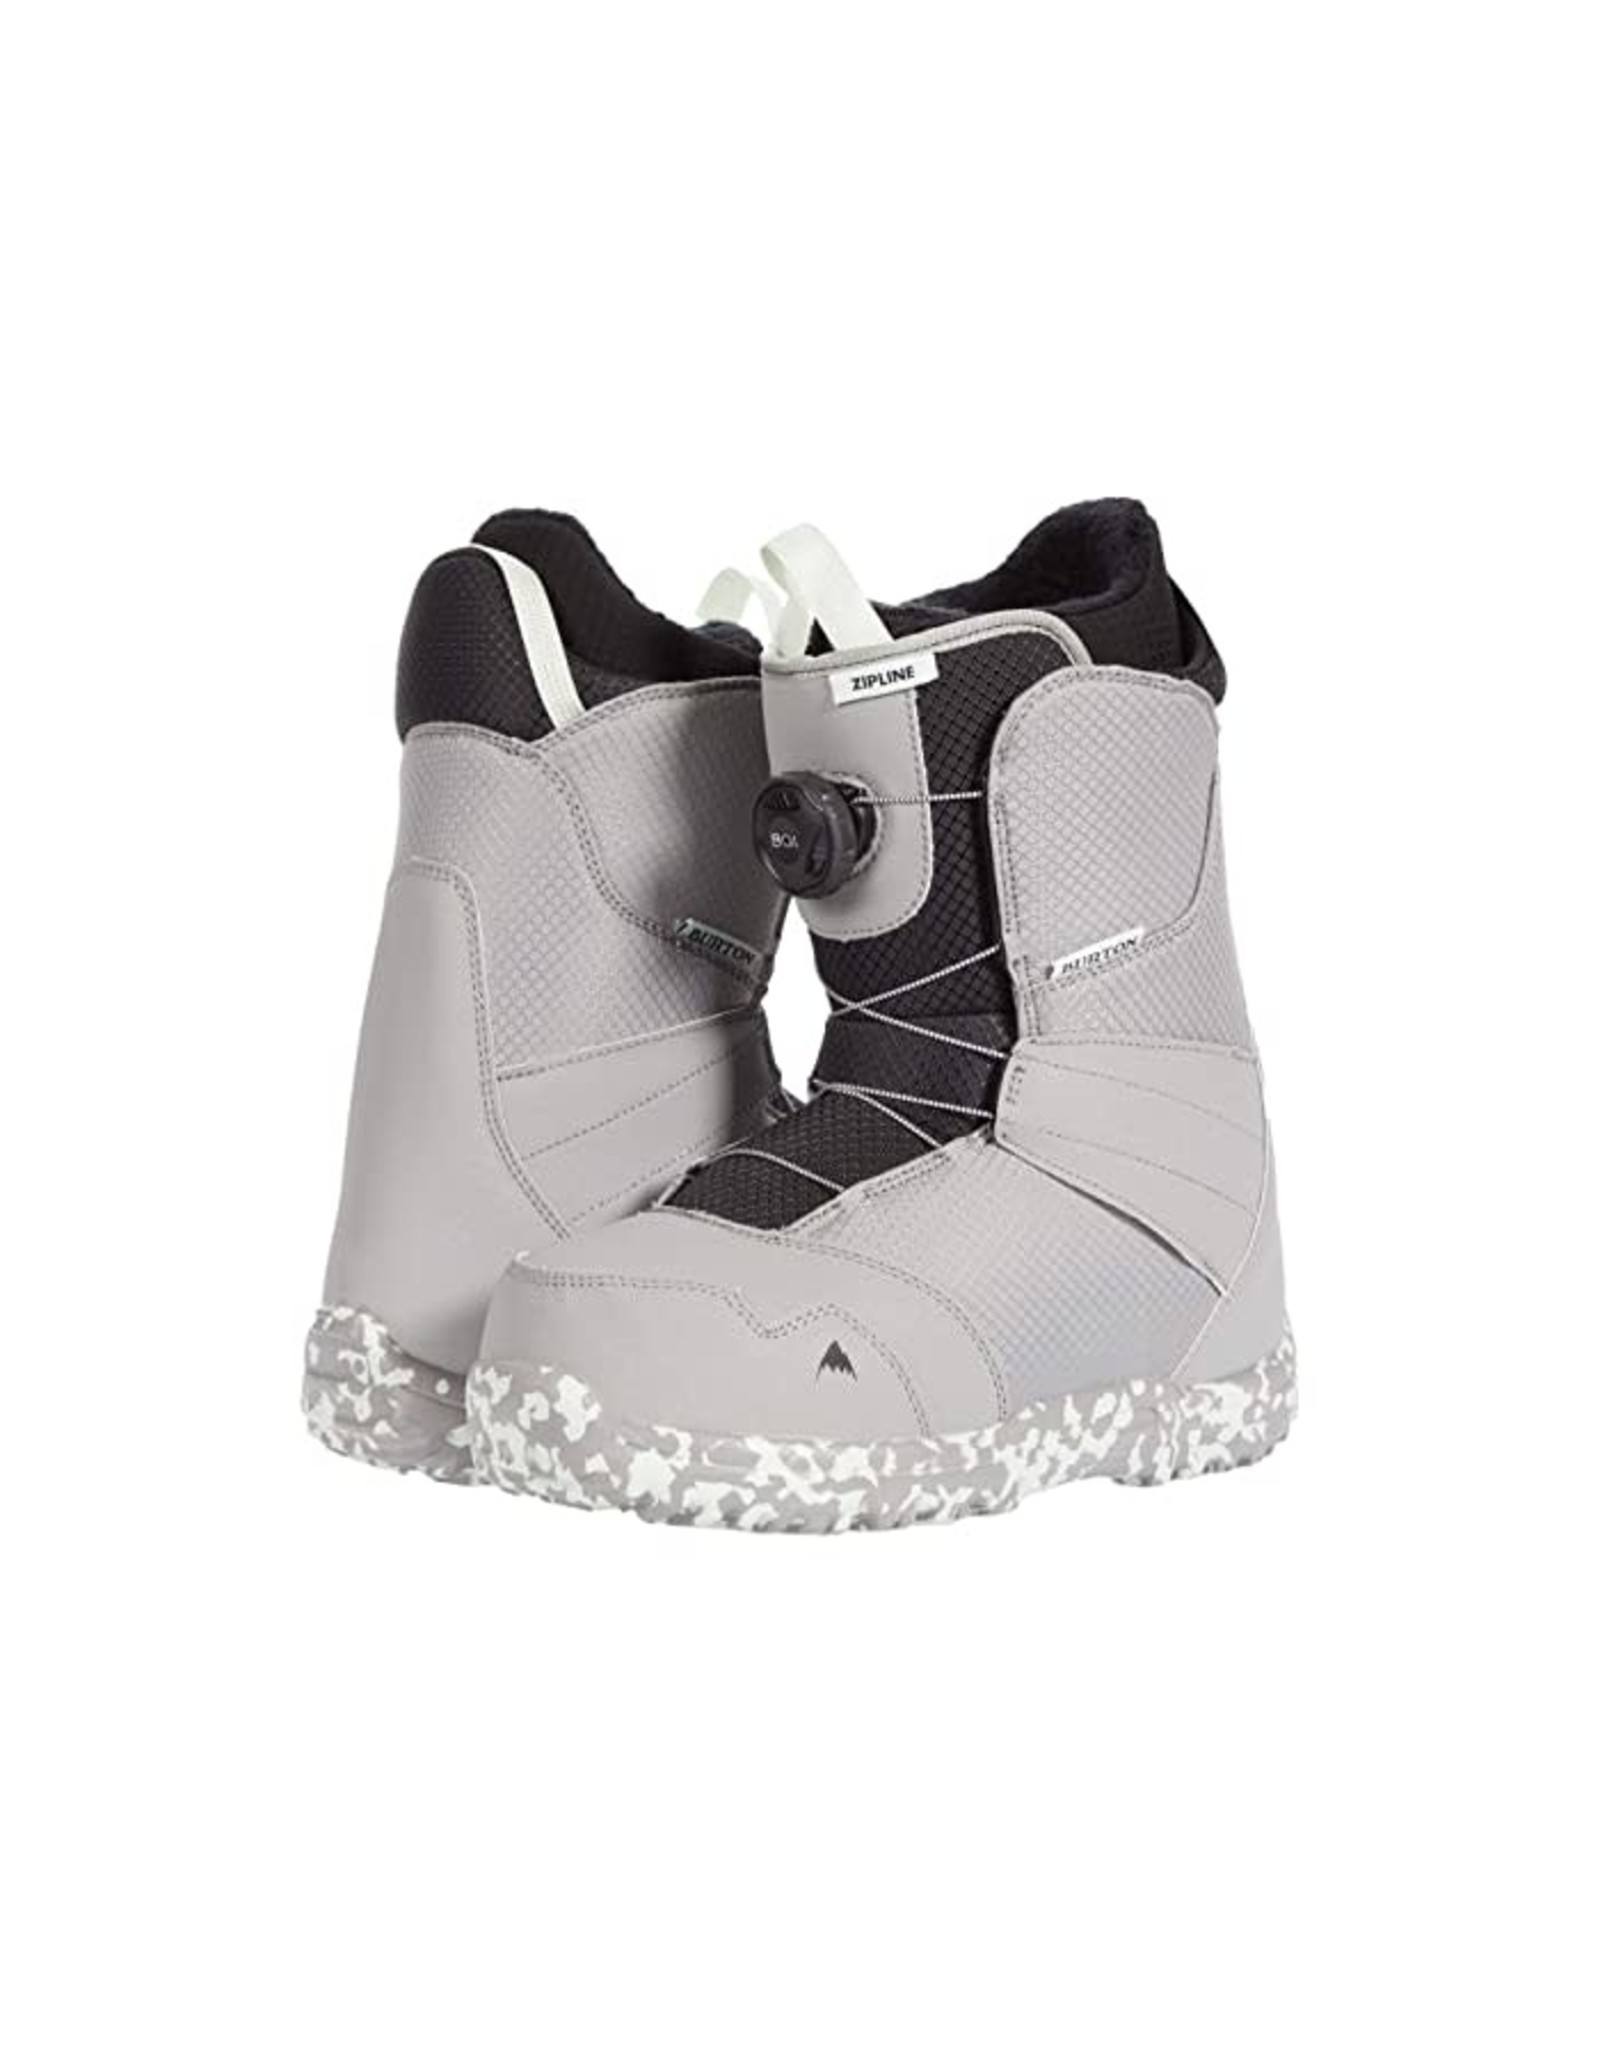 burton Burton - Botte junior zipline boa gray/neo mint